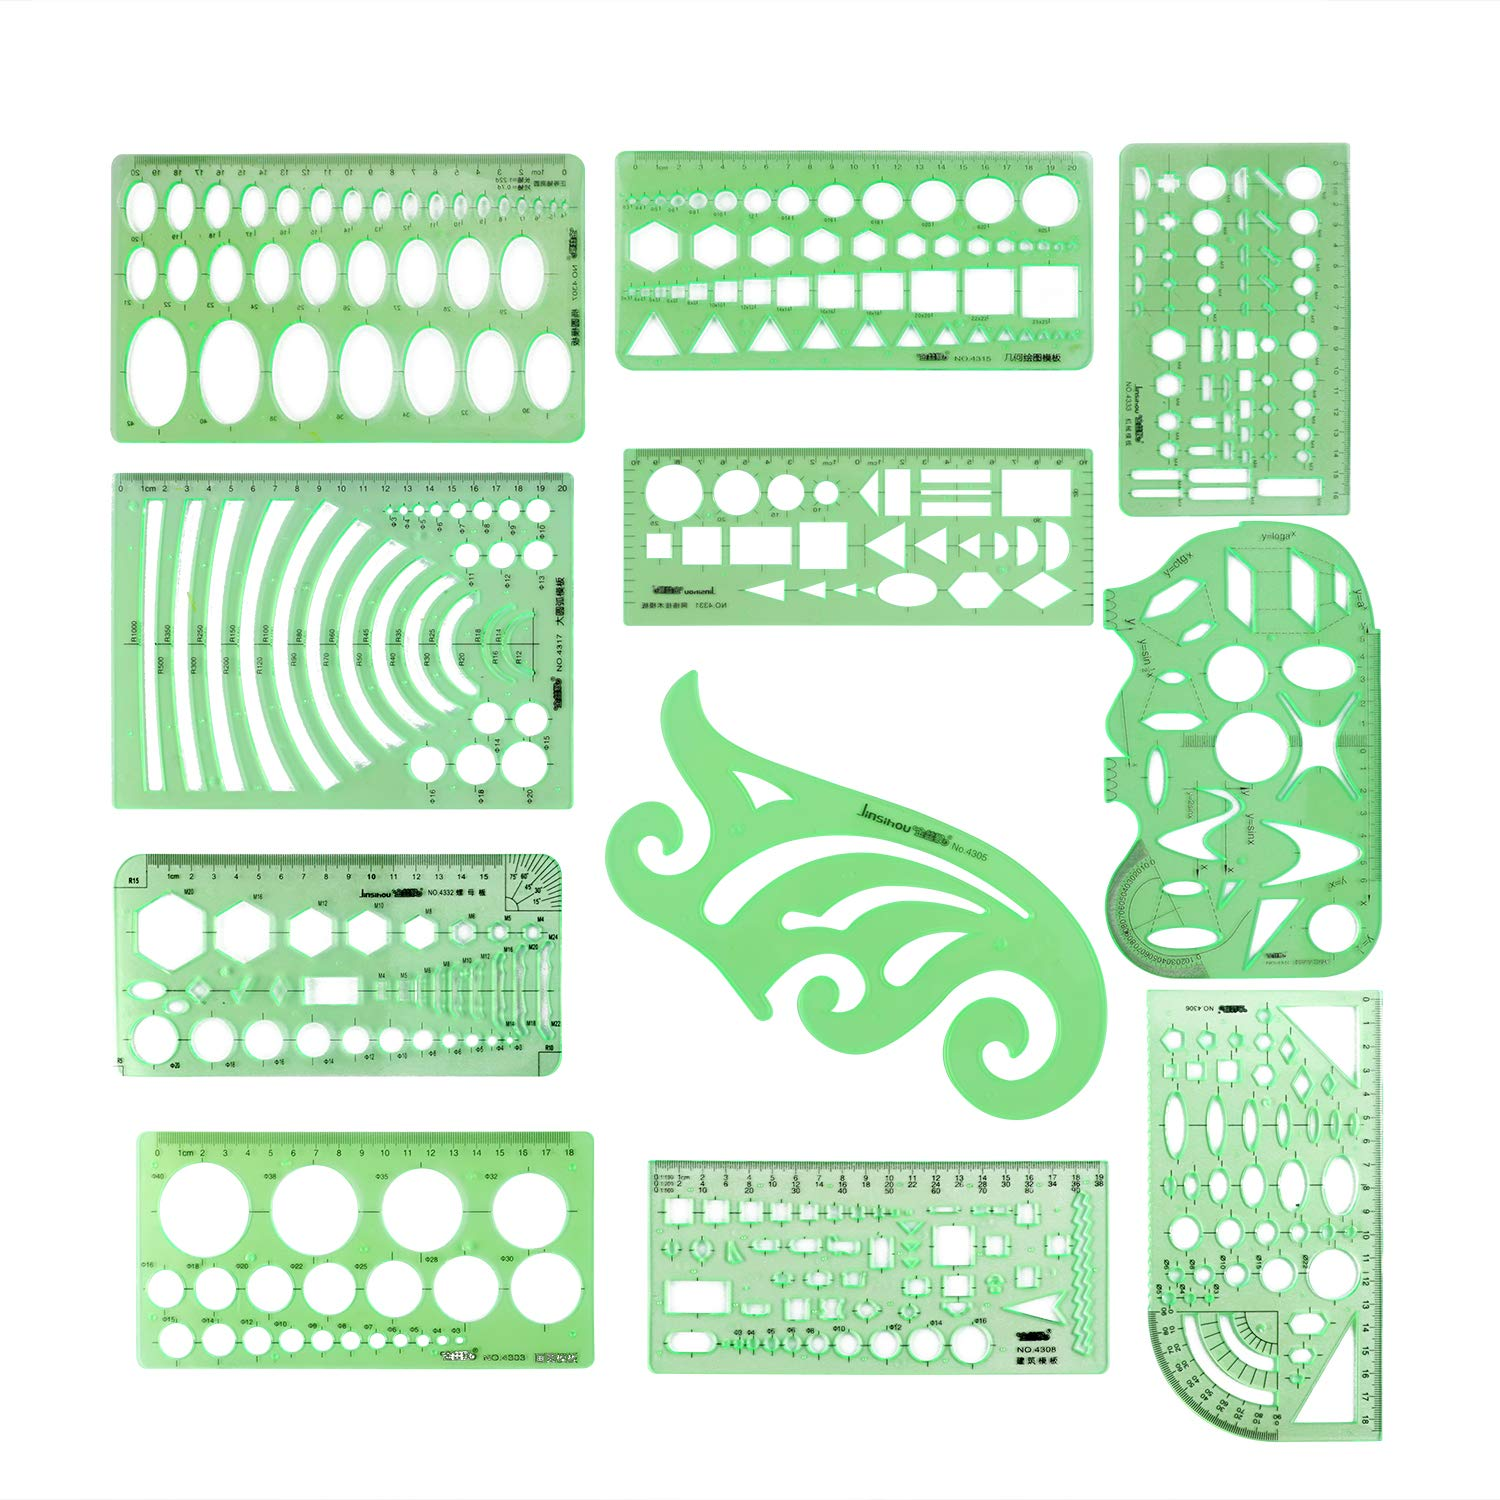 11pcs Drawing Template Ruler Stencils Tool Include Architectural Ruler,French Curve Template,Circle Template,Geometric Stencil Plastic Rule for School Studying and Office Design by Fatpig